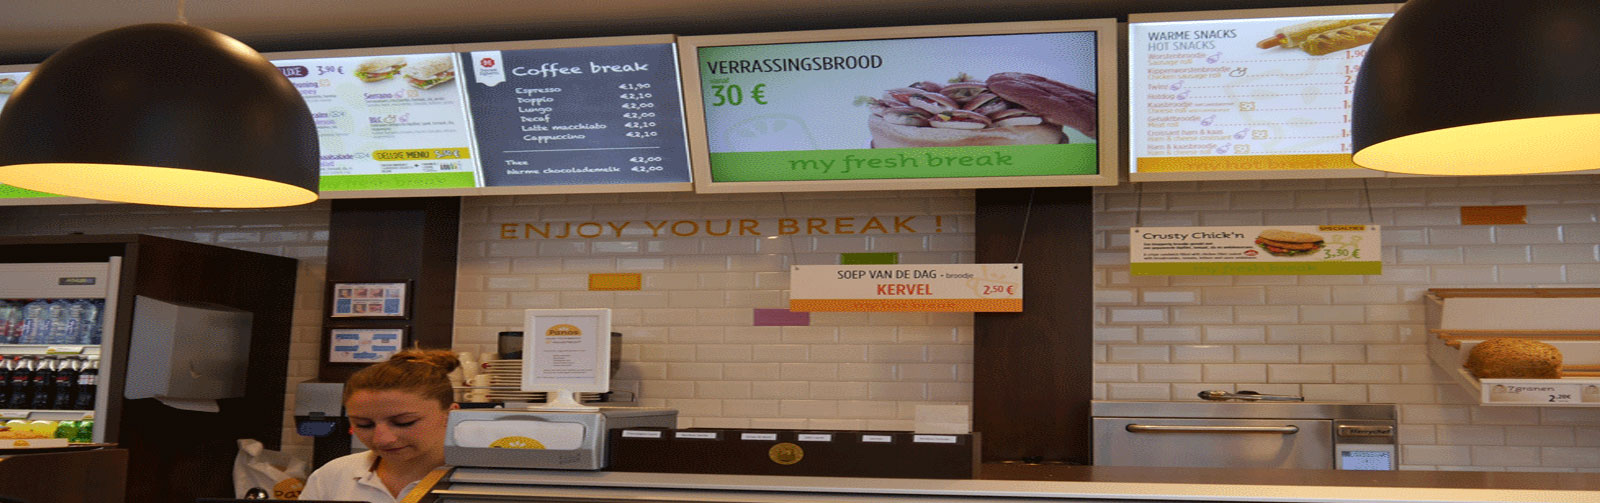 Digital signage to drive sales and generate demonstrable results at Panos